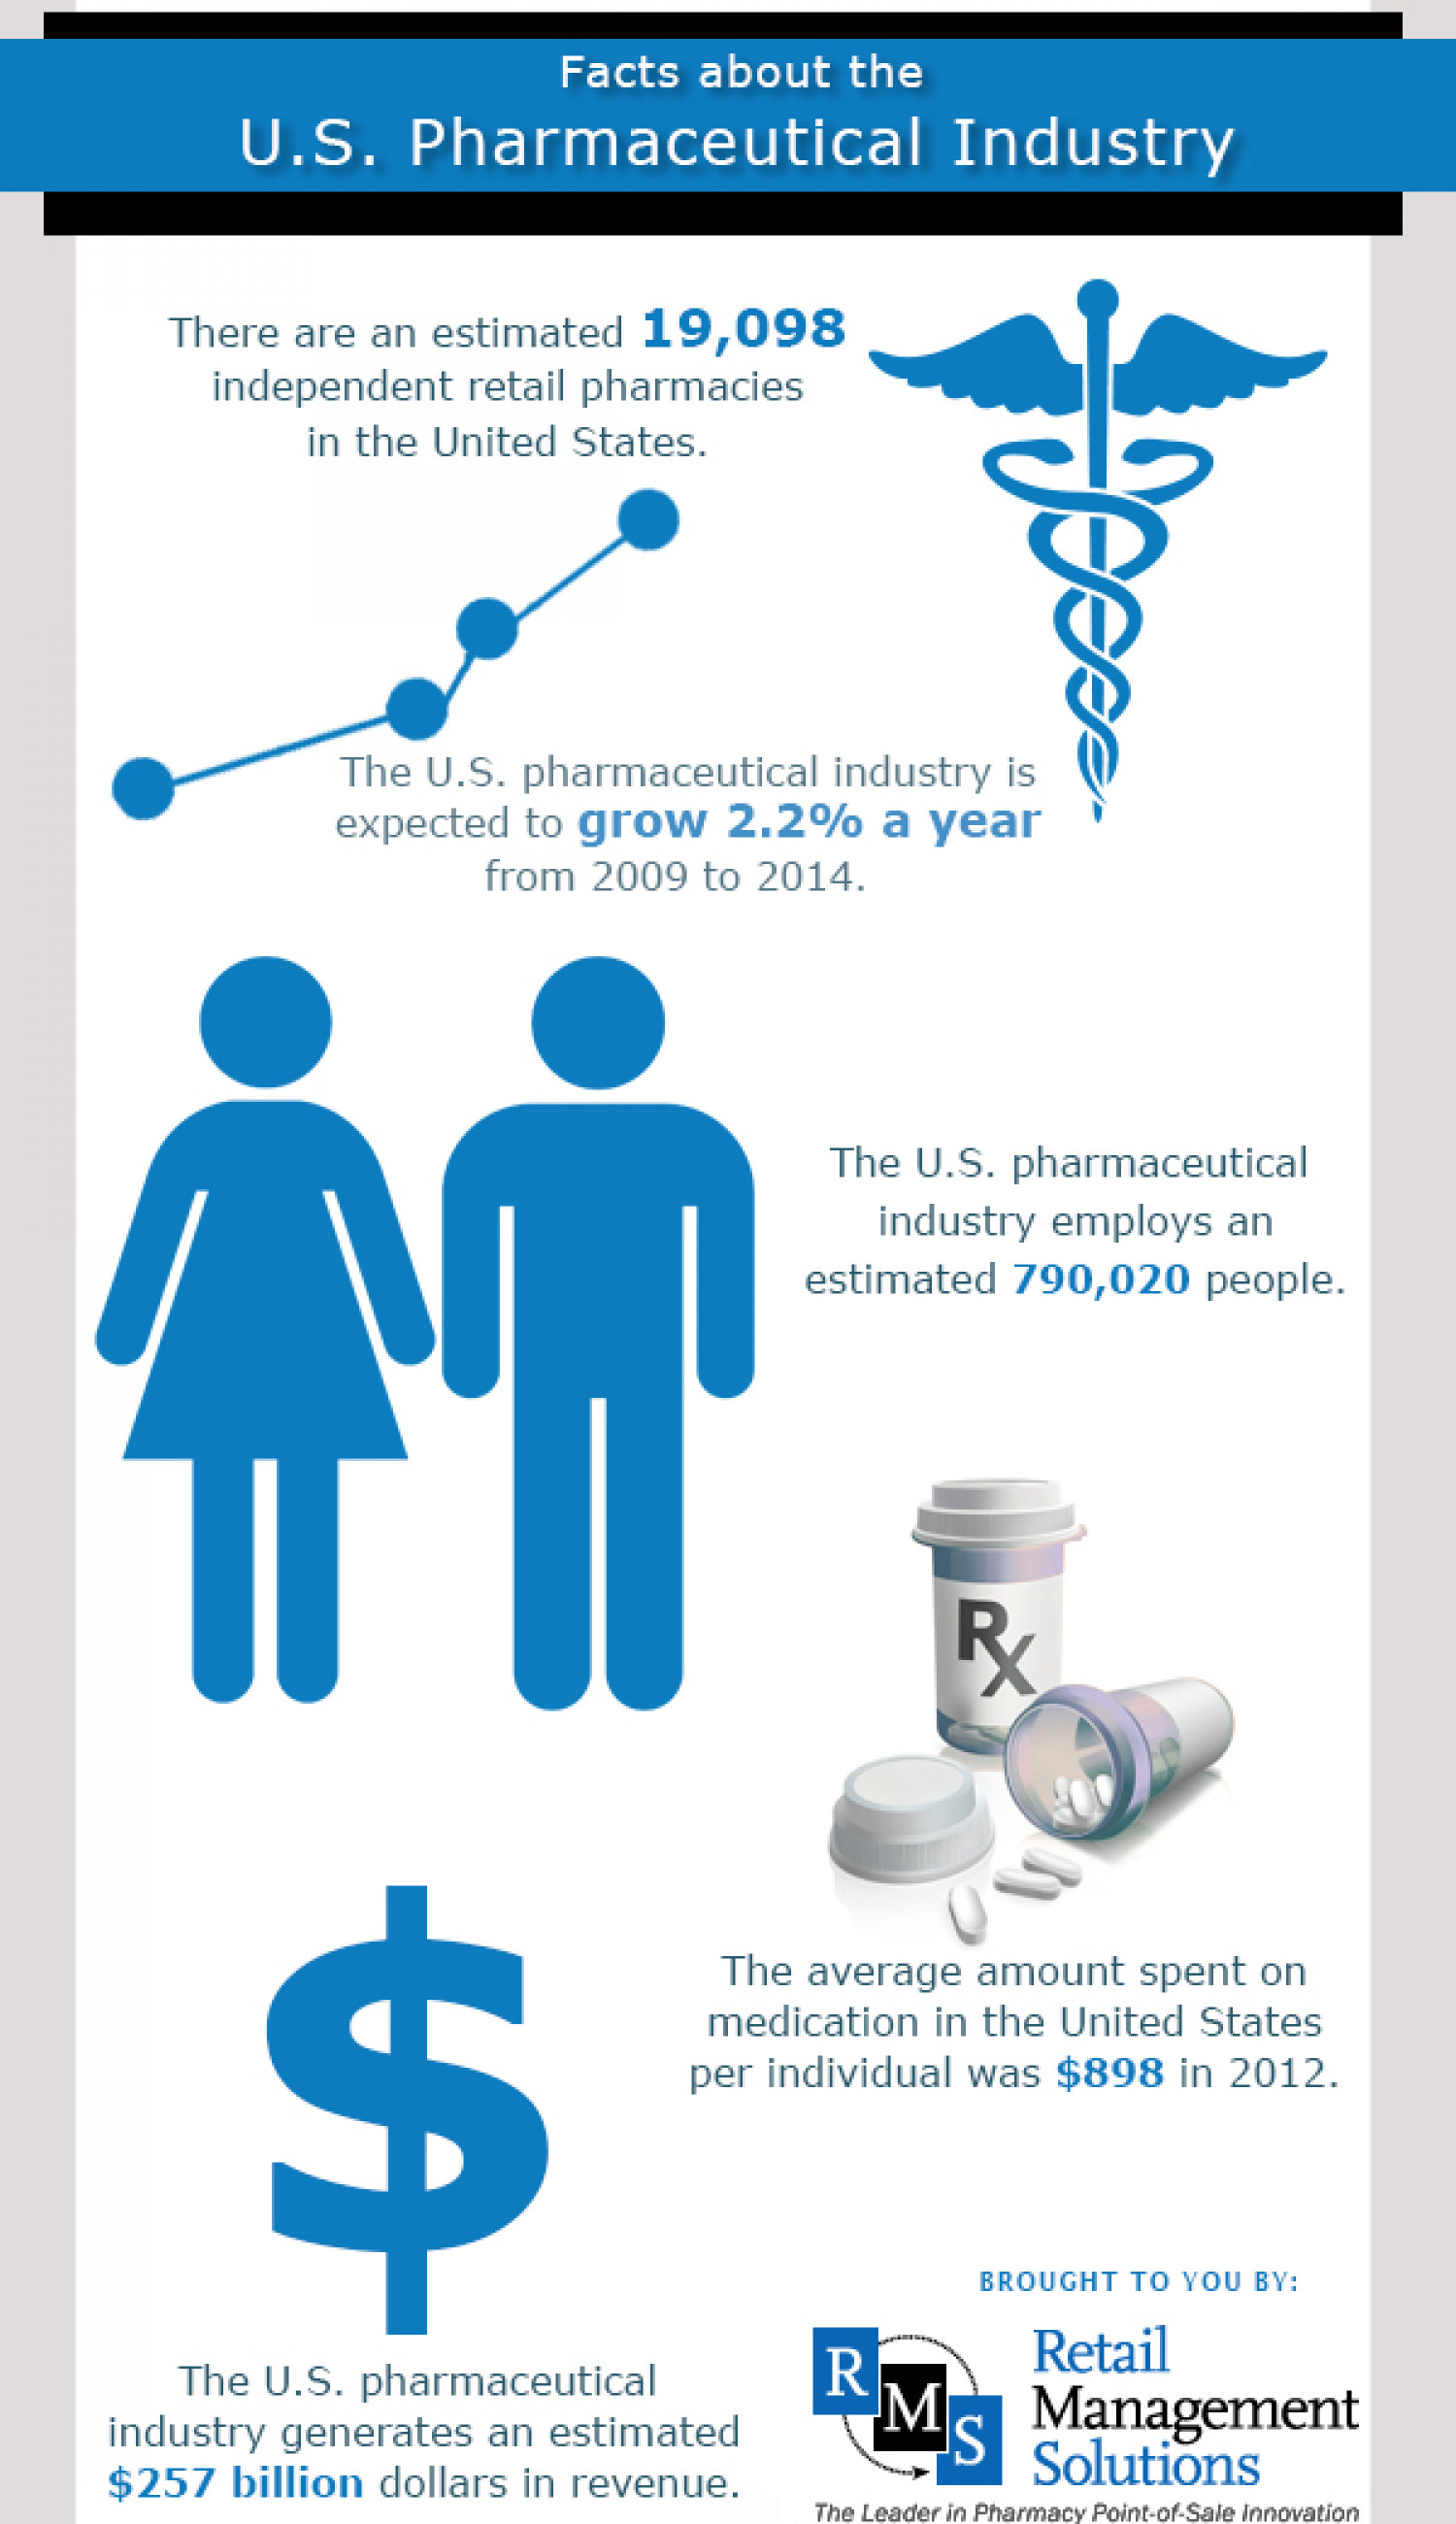 Facts about the U.S. Pharmaceutical Industry Infographic